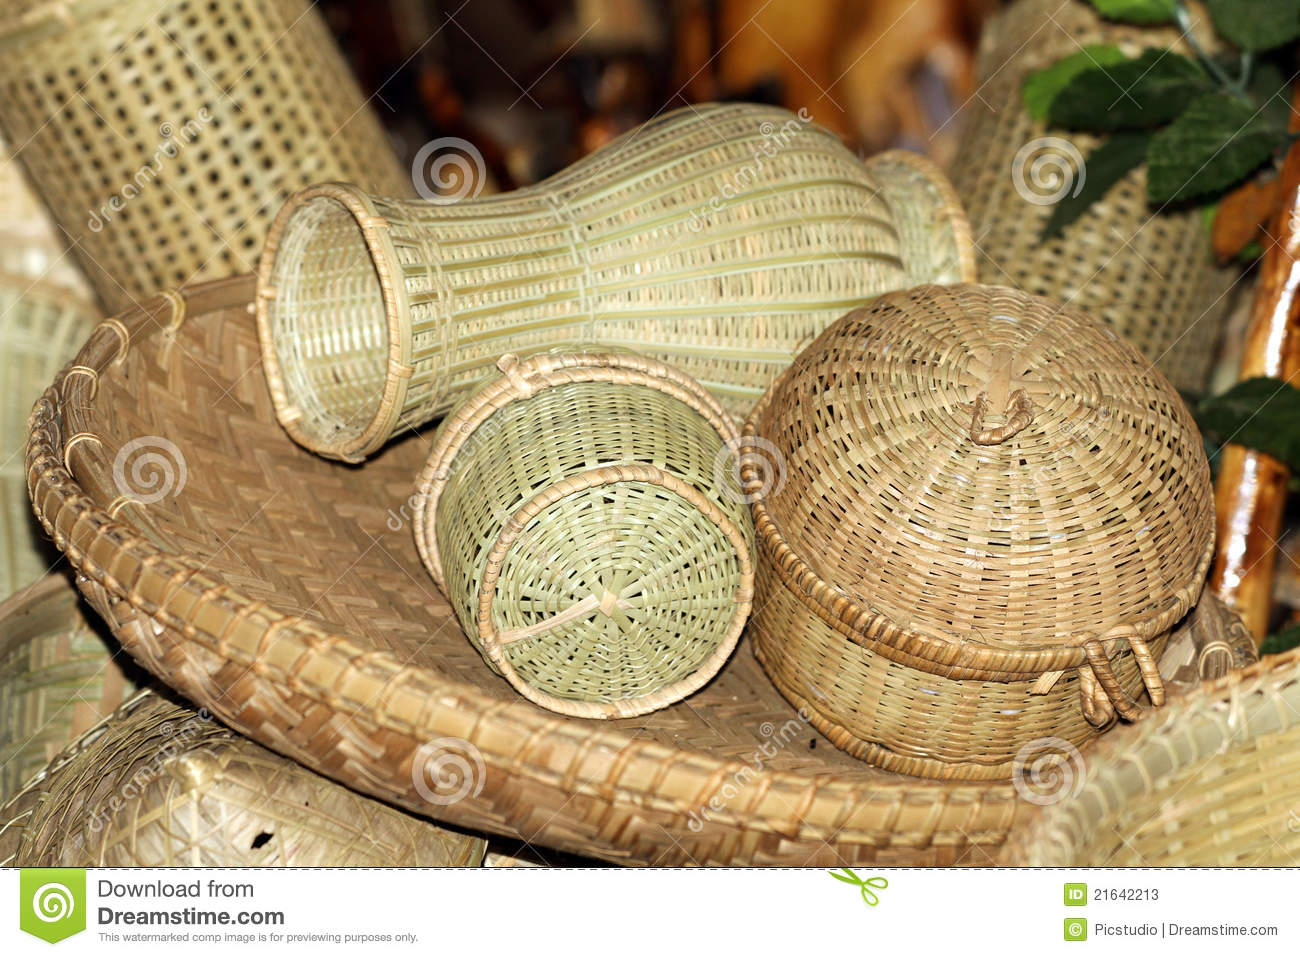 Home Decorating Blogs Bamboo Home Items Stock Photos Image 21642213